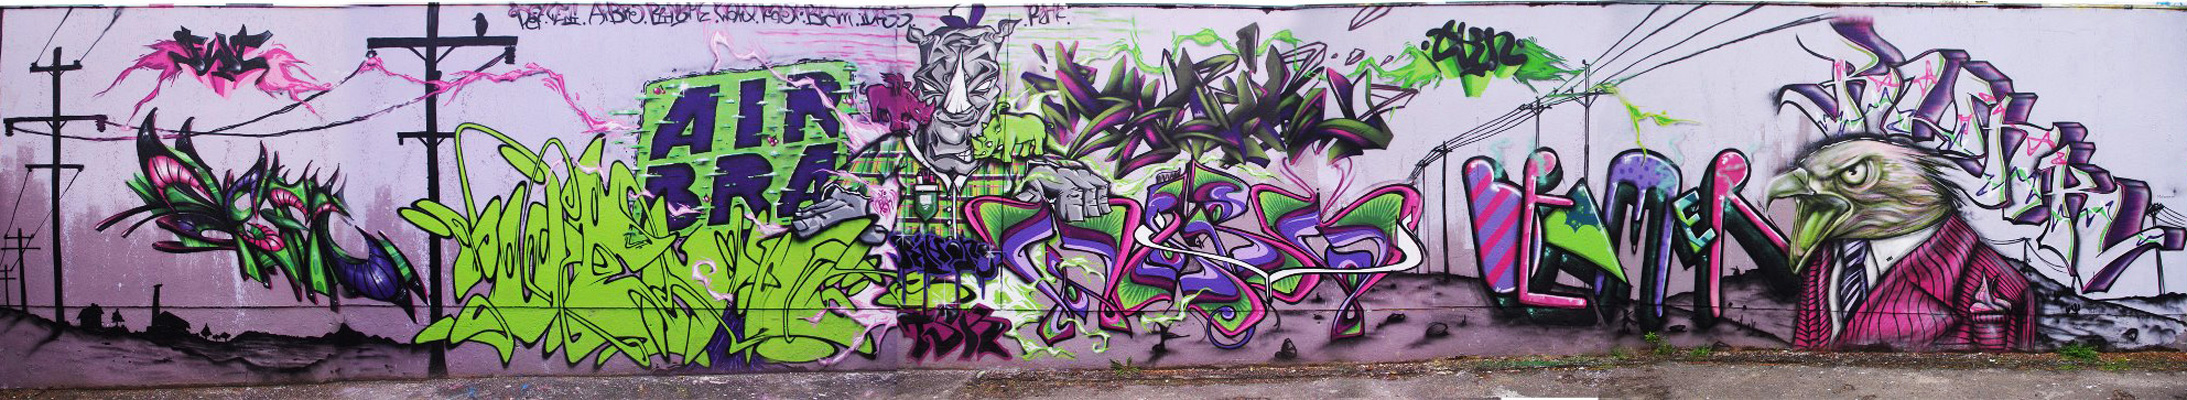 fresque_graffiti_riom_rino_deft_endtoend